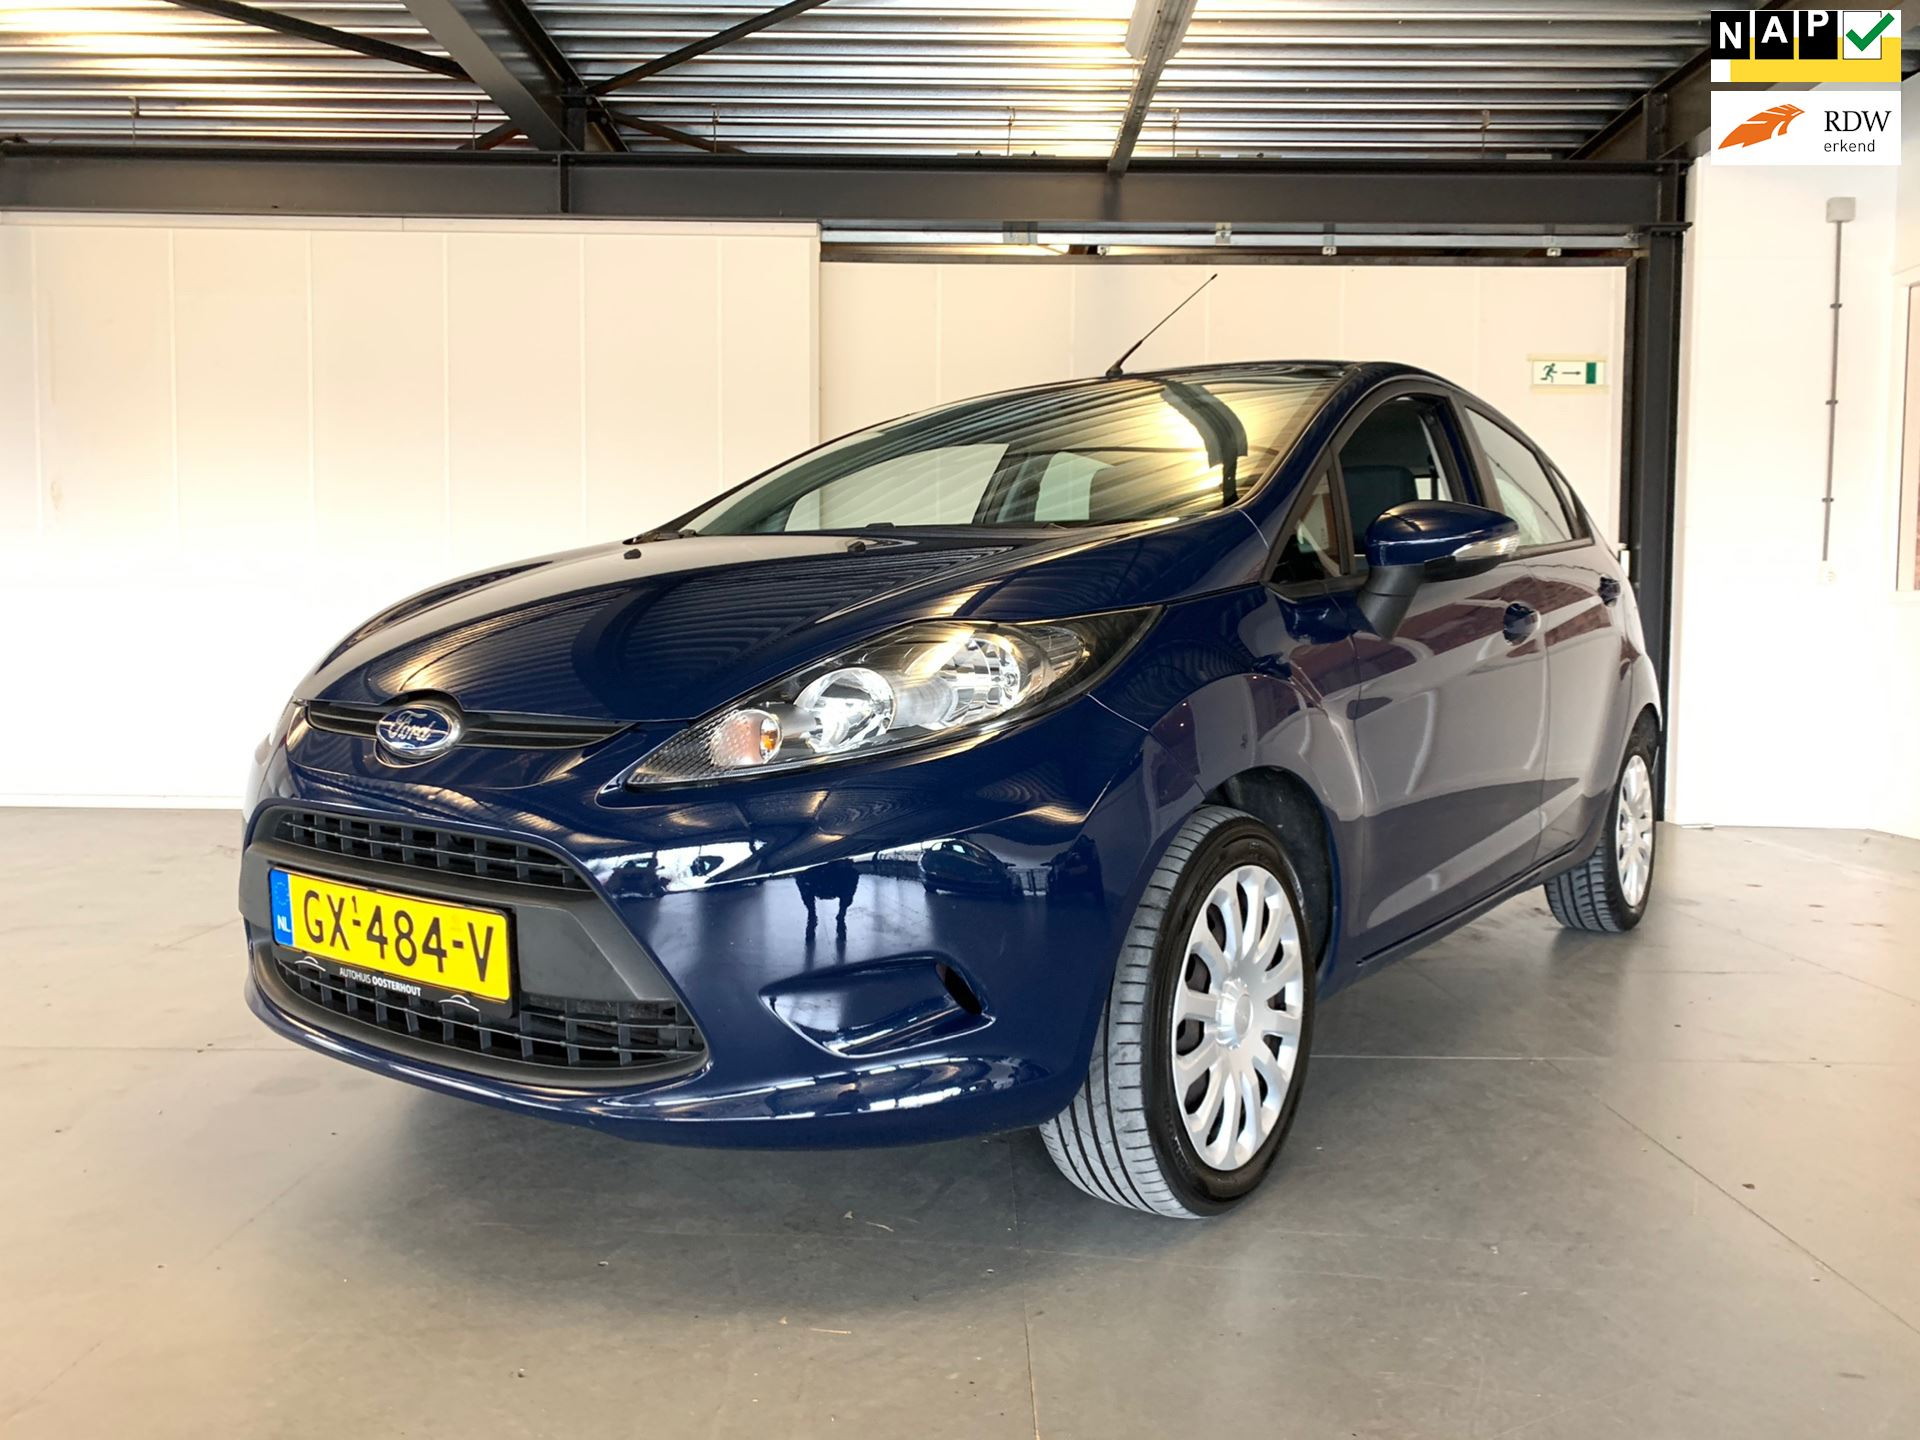 Ford Fiesta occasion - Autohuis Oosterhout